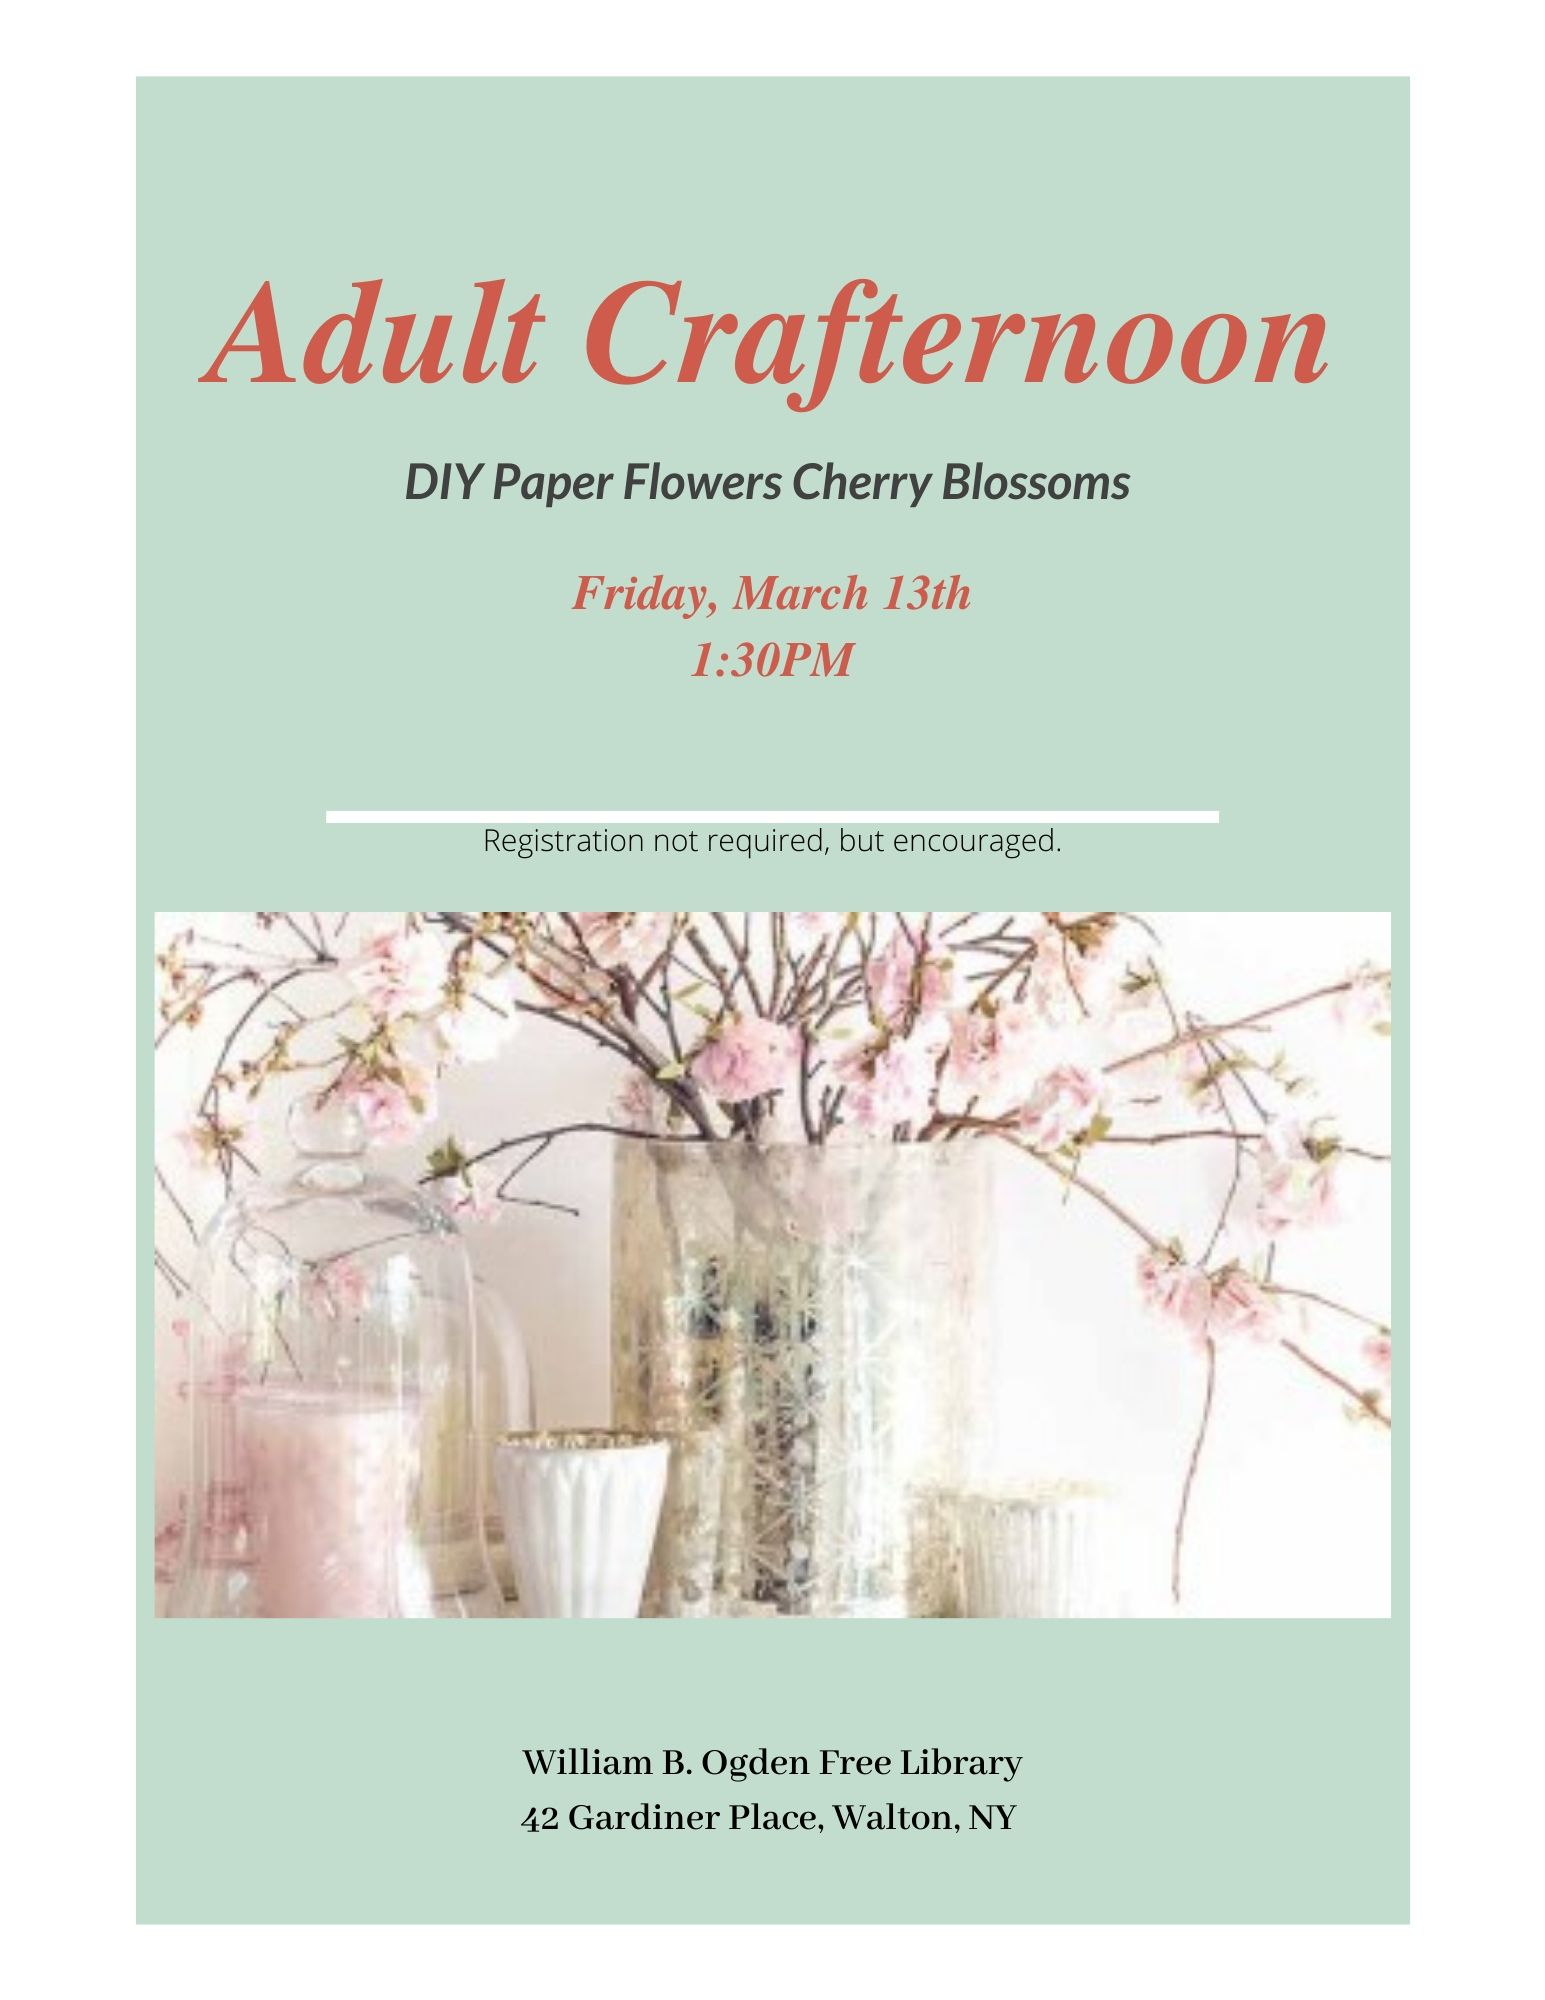 Adult Crafternoon